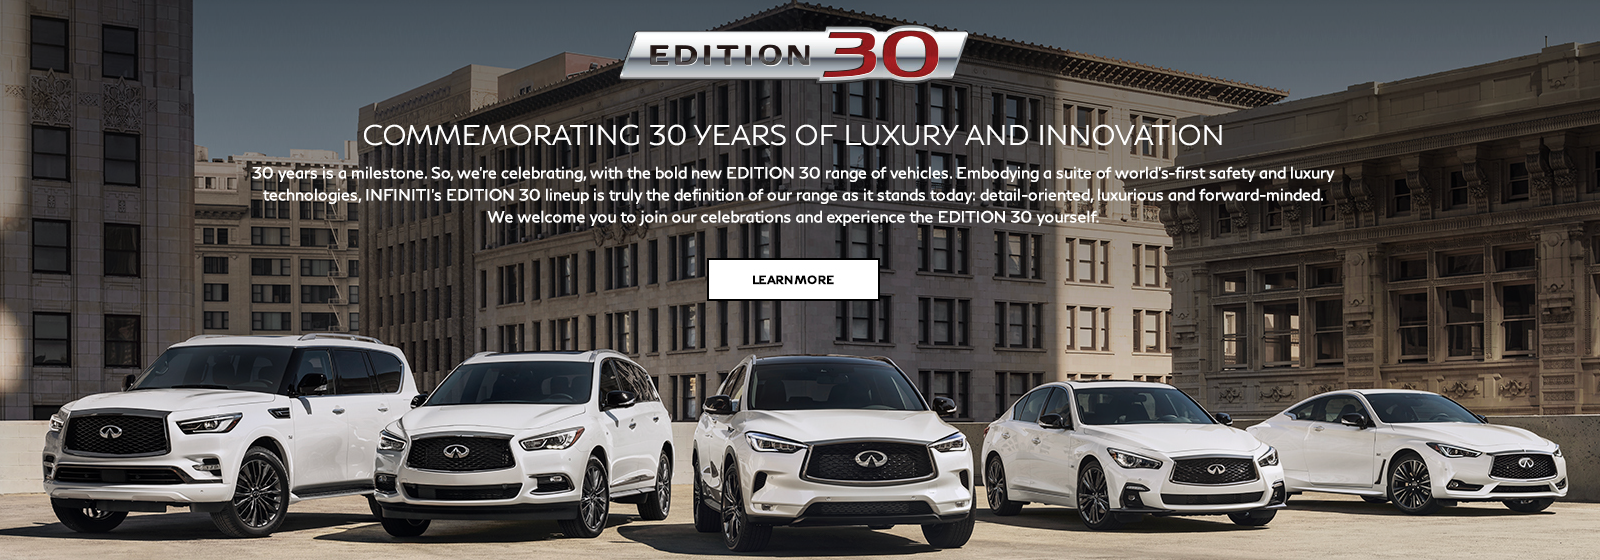 INFINITI Edition 30 - Learn More